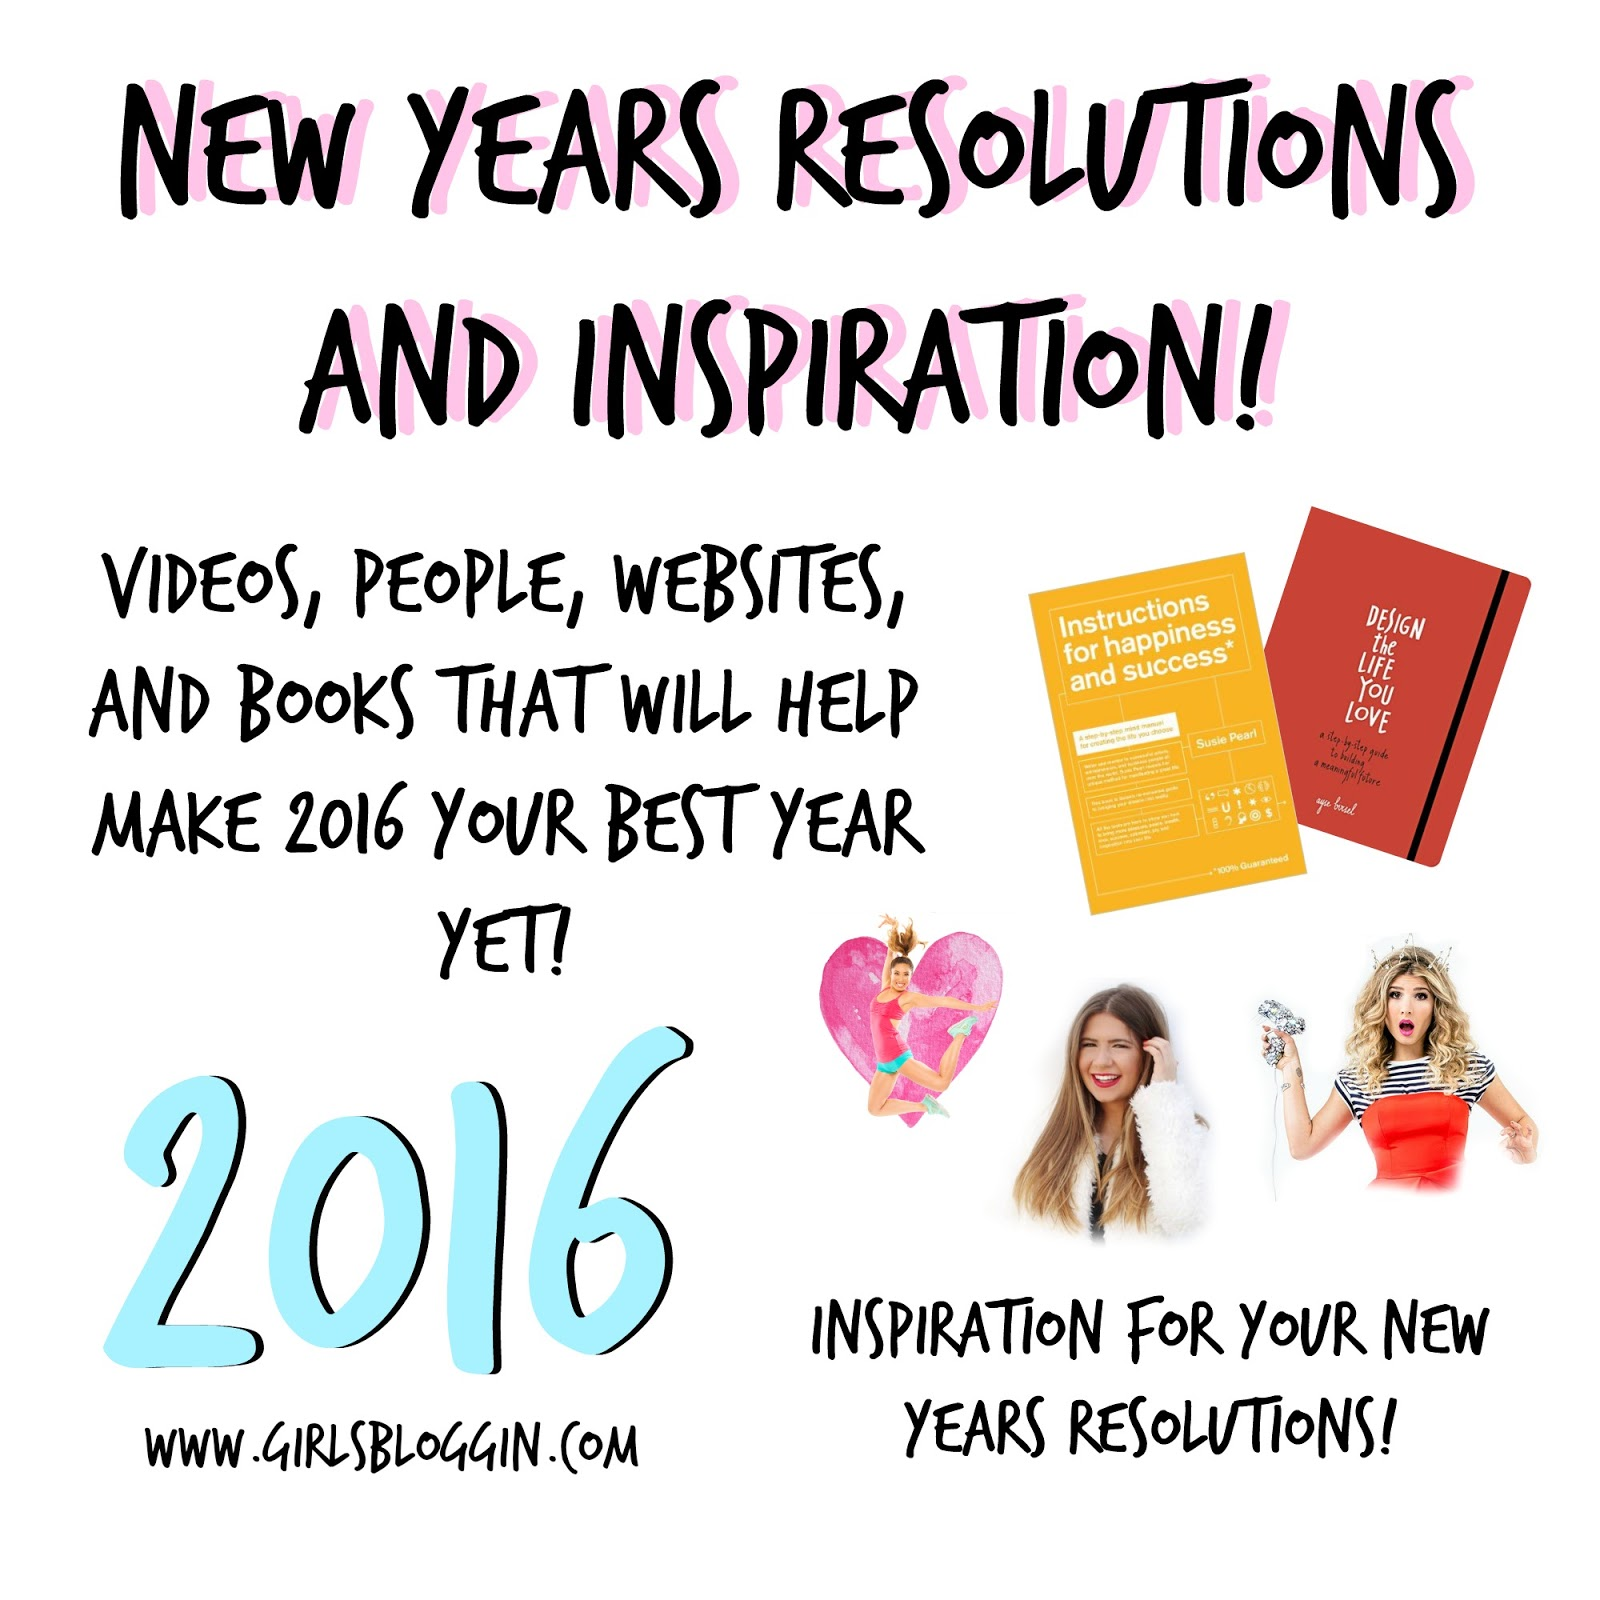 Girl\'s blog: New Years Inspiration and Resolutions!